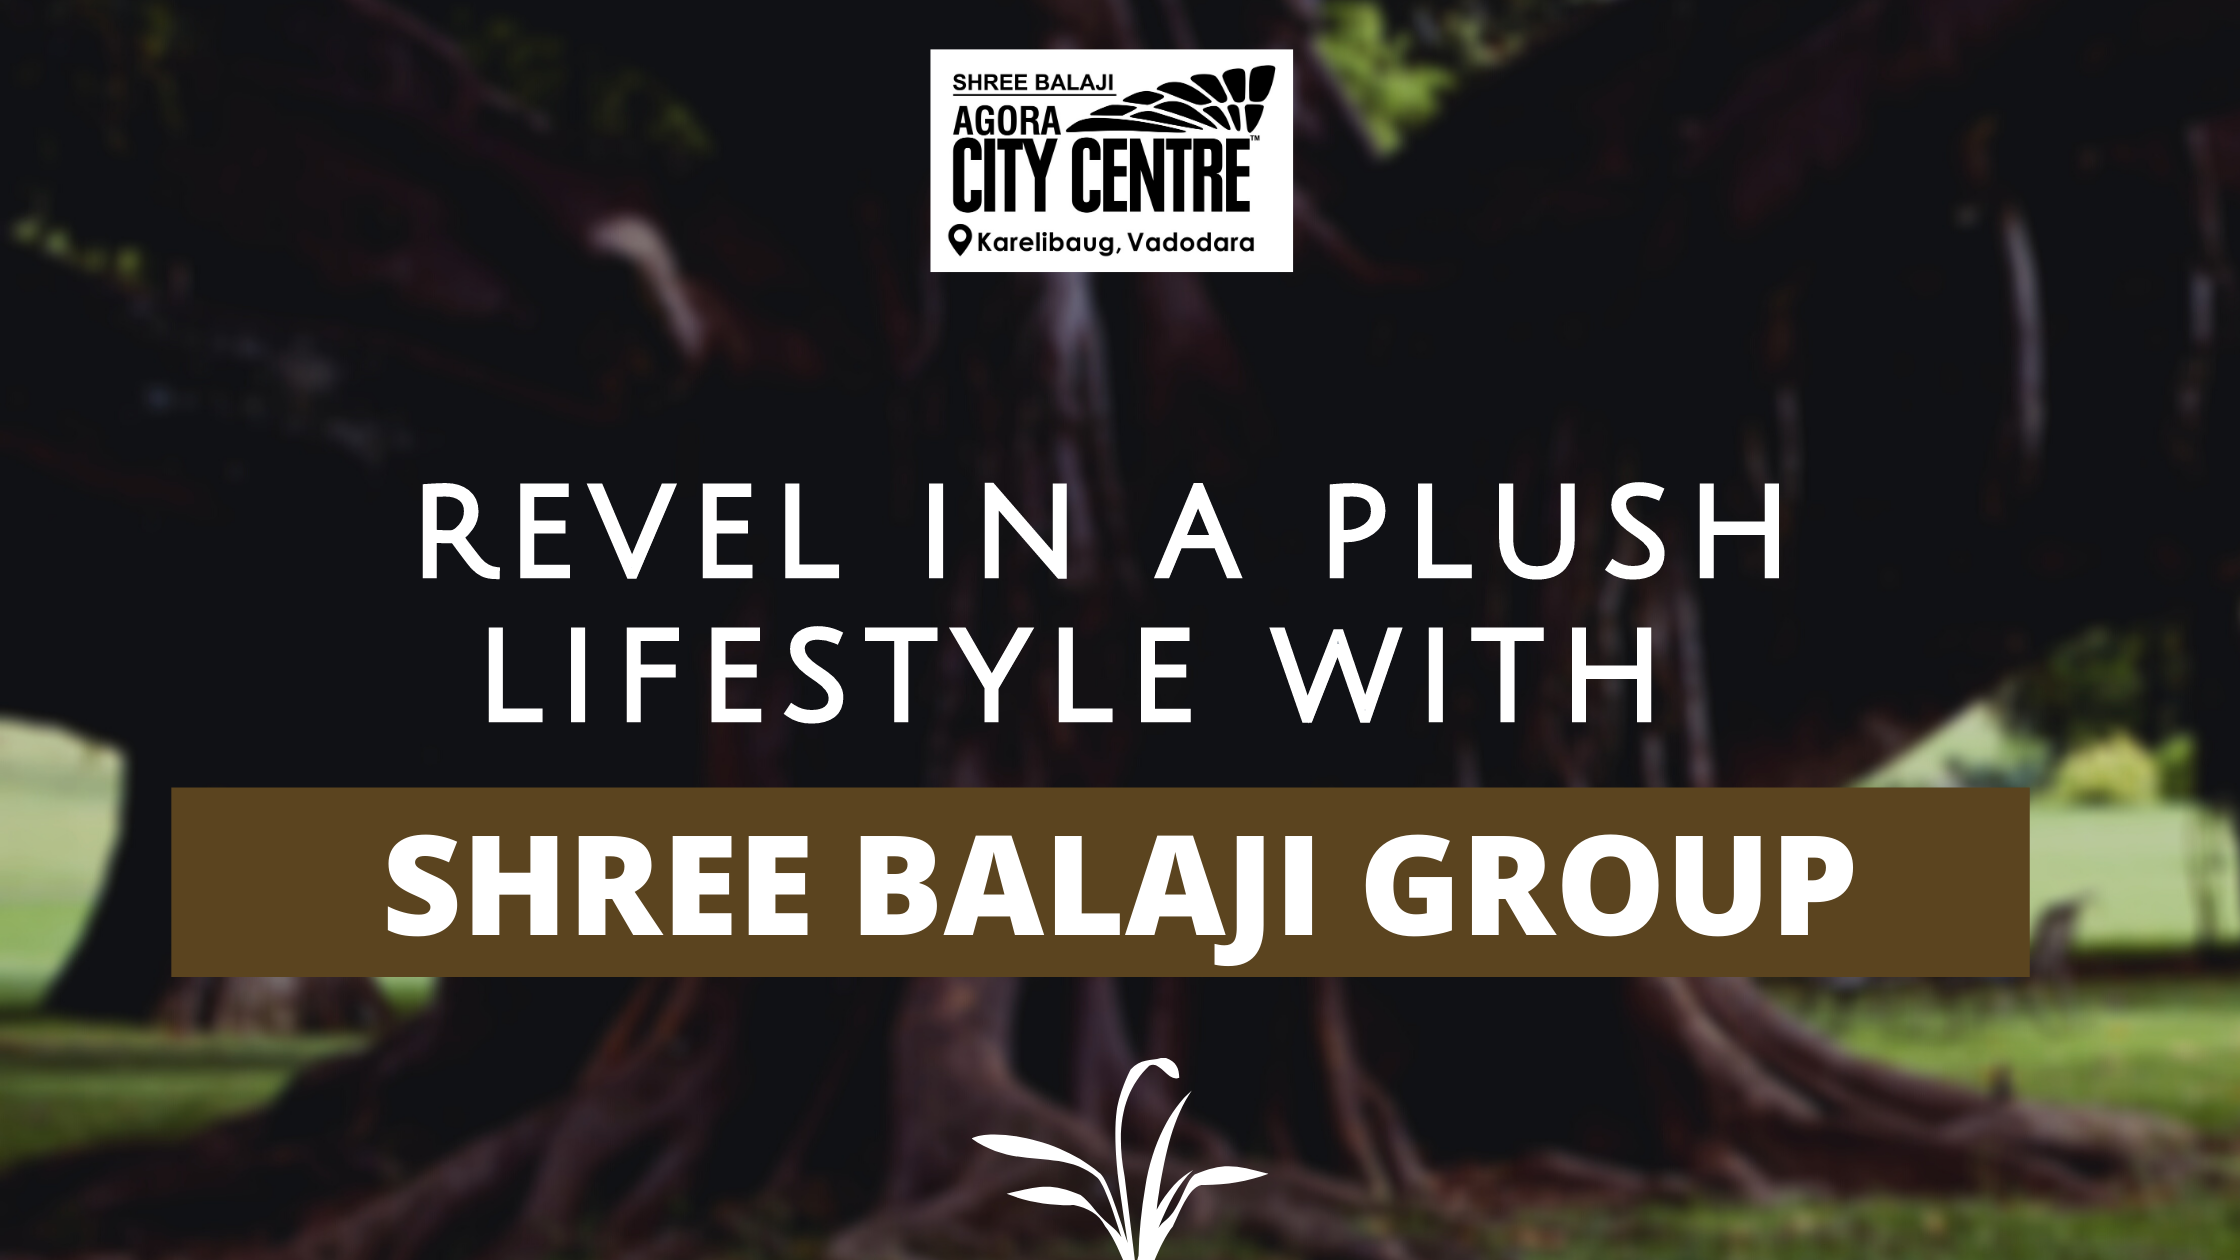 REVEL IN A PLUSH LIFESTYLE WITH SHREE BALAJI GROUP